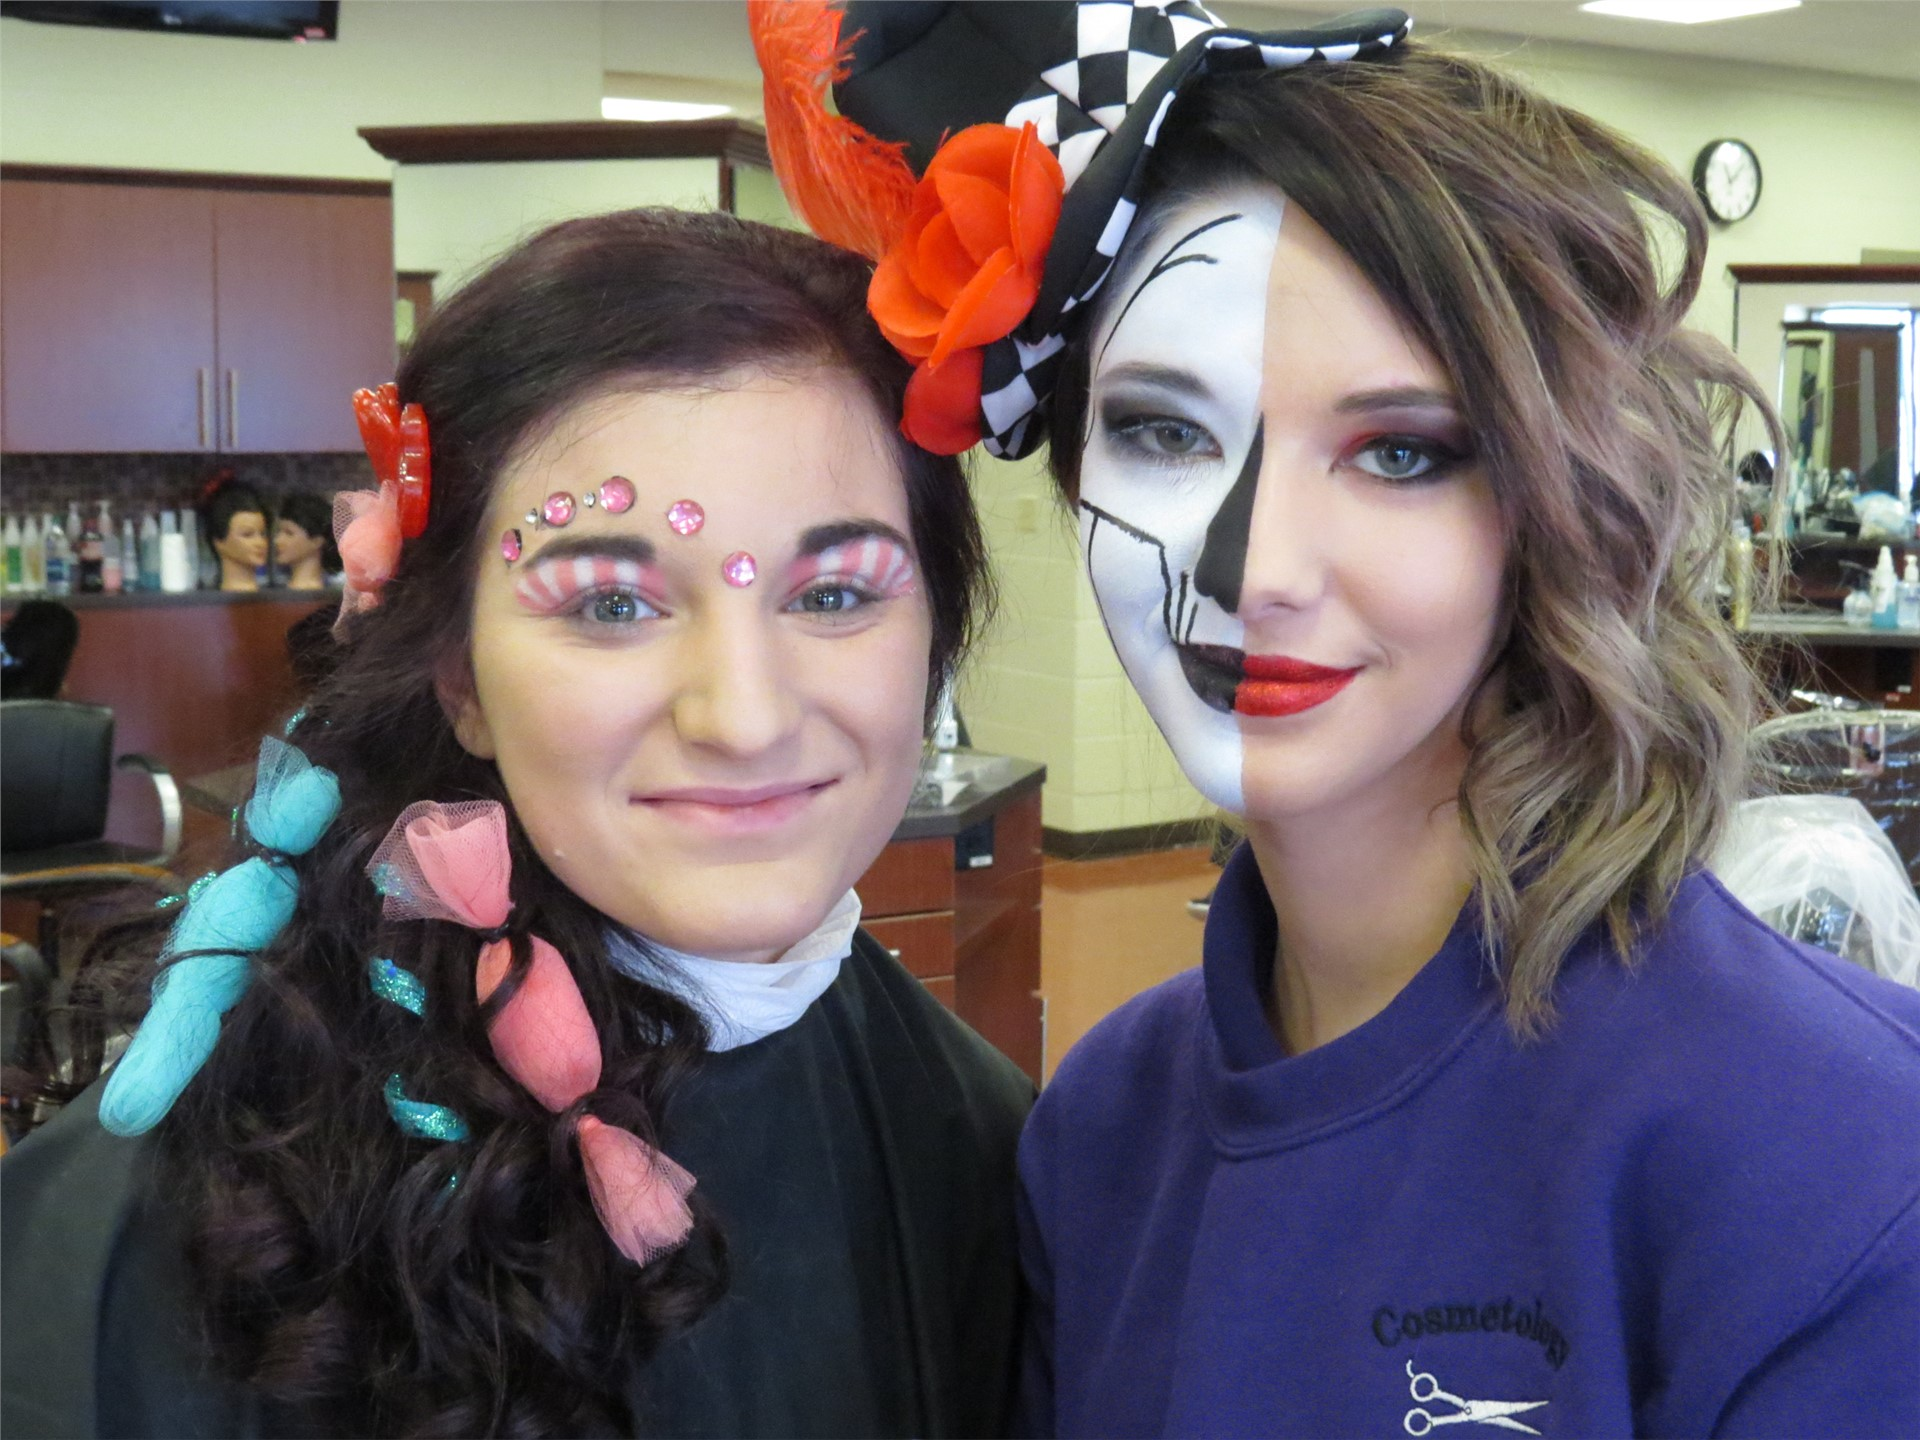 Two female Cosmetology students with theatrical make-up on